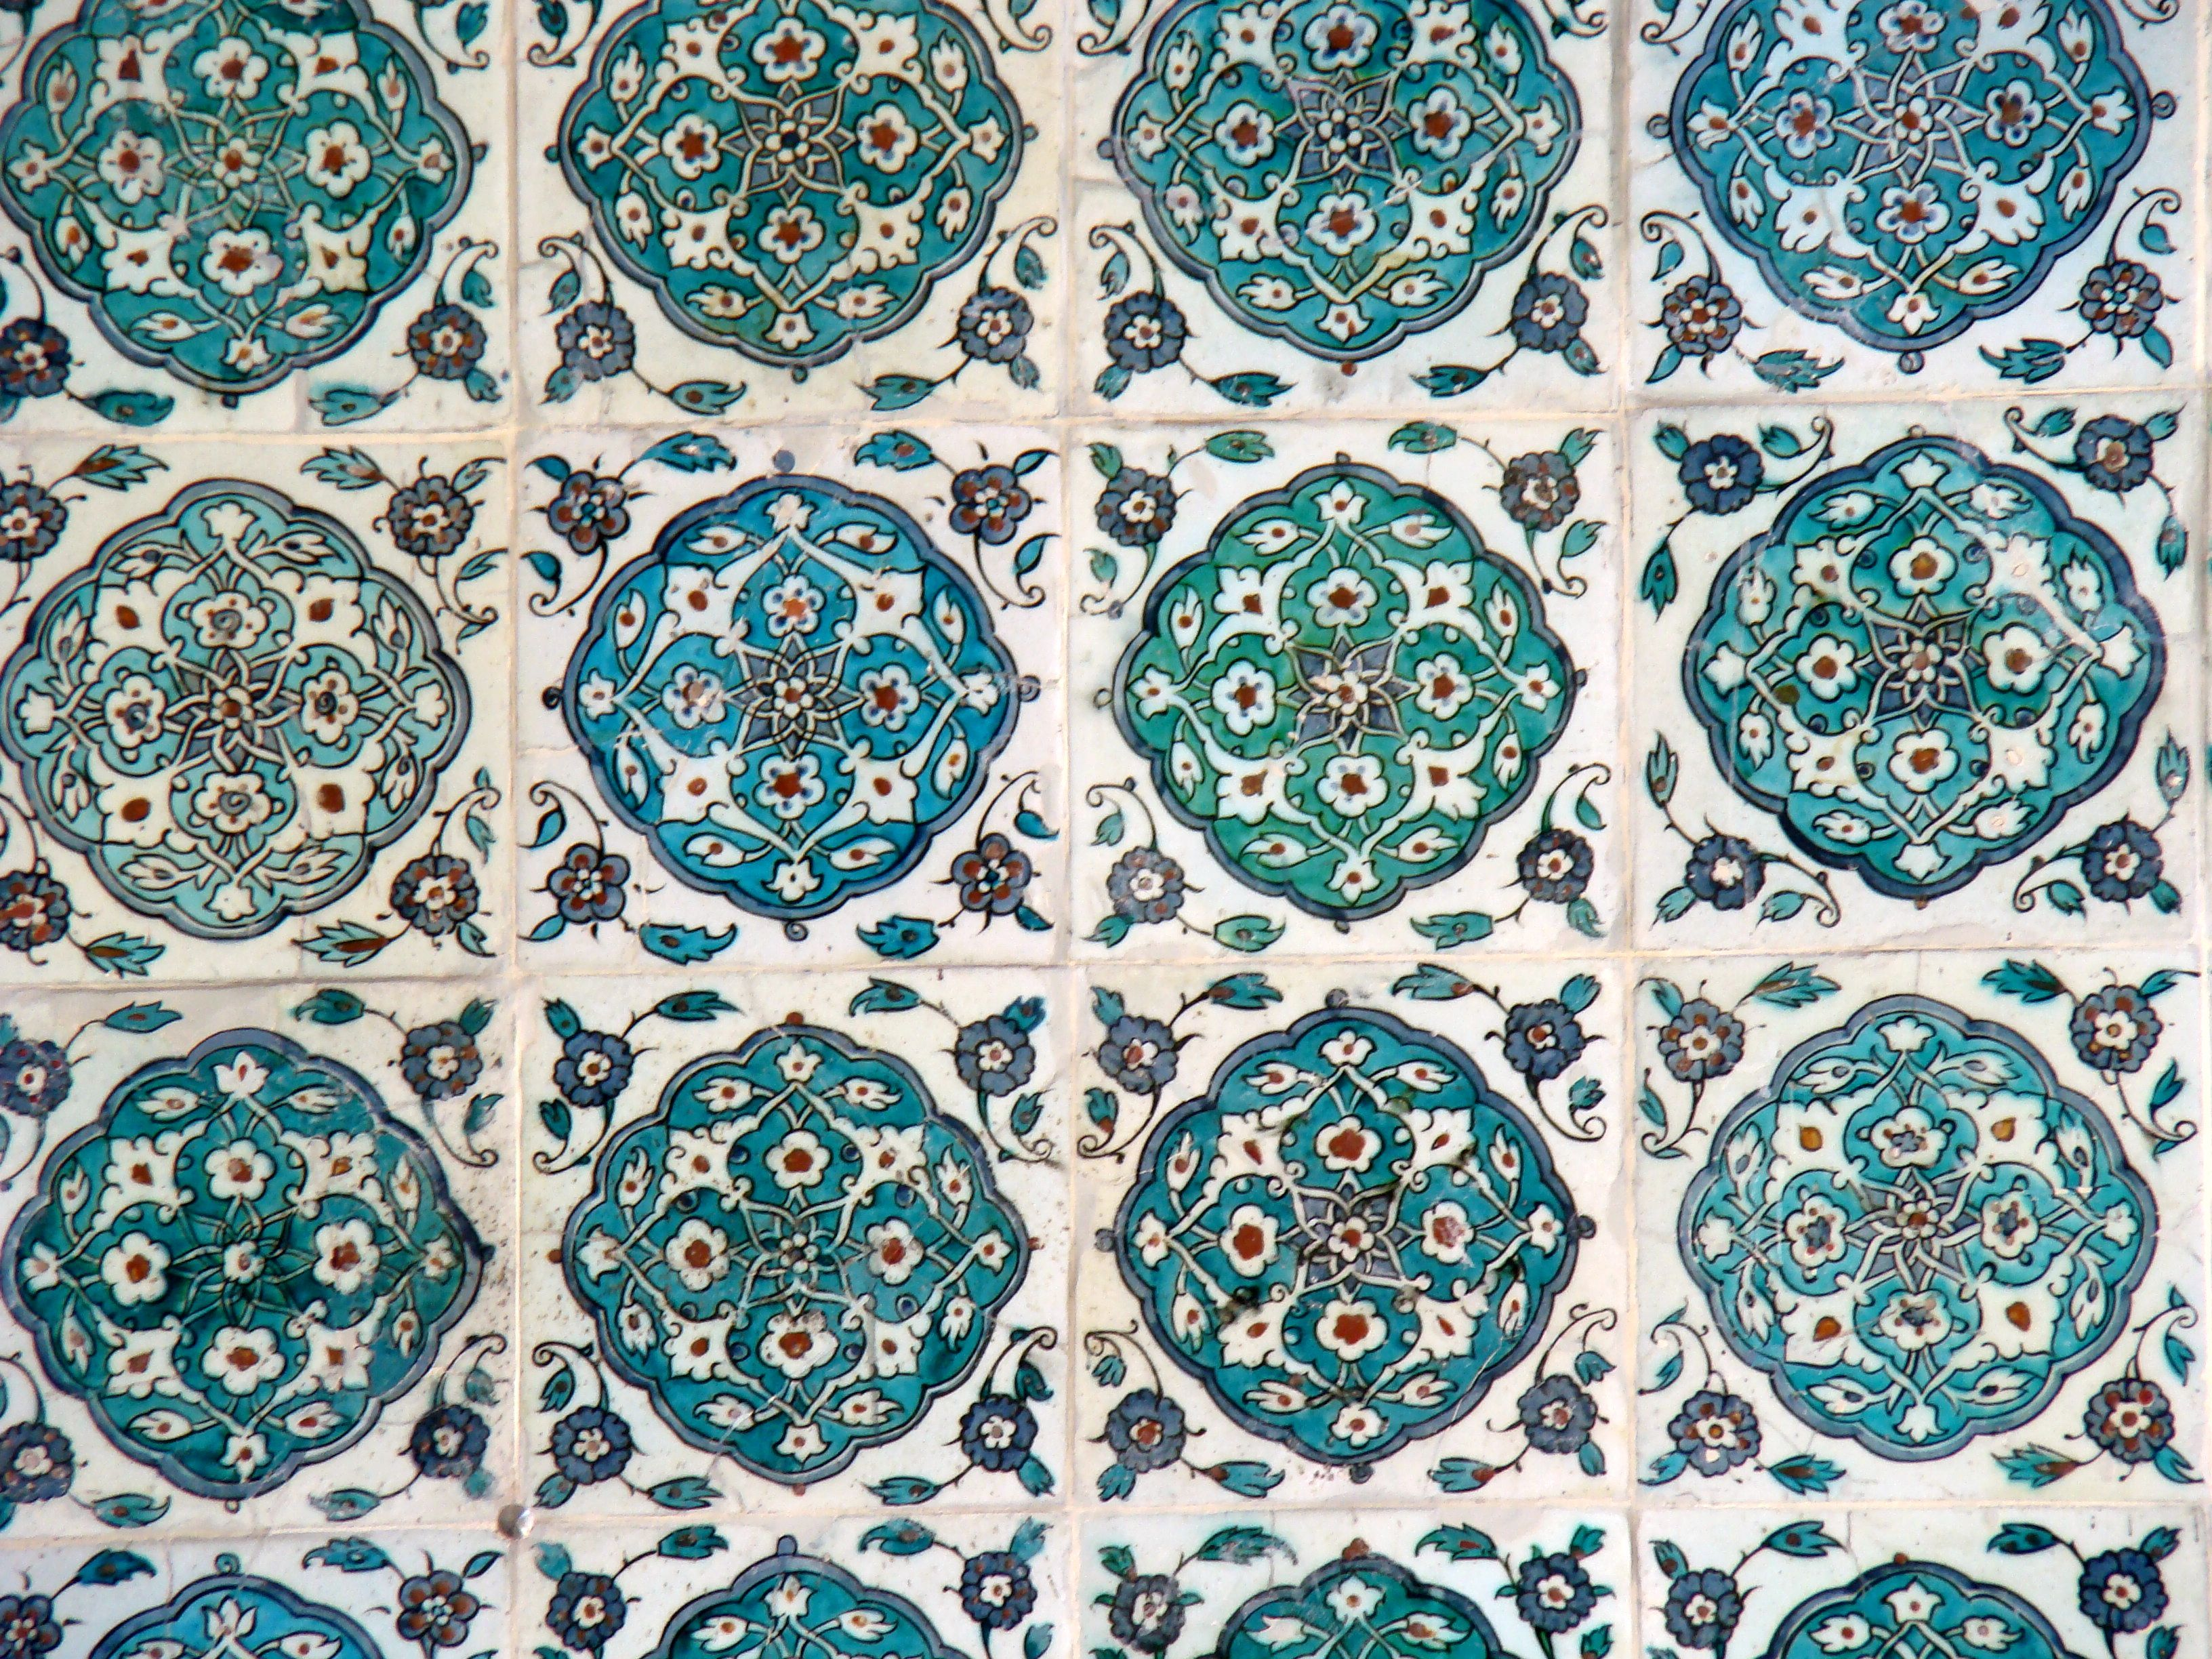 Tile Decorations Unique Blue Mosque Iznik Tiles  Blue Iznik Tile Decorations Topkapi Decorating Inspiration